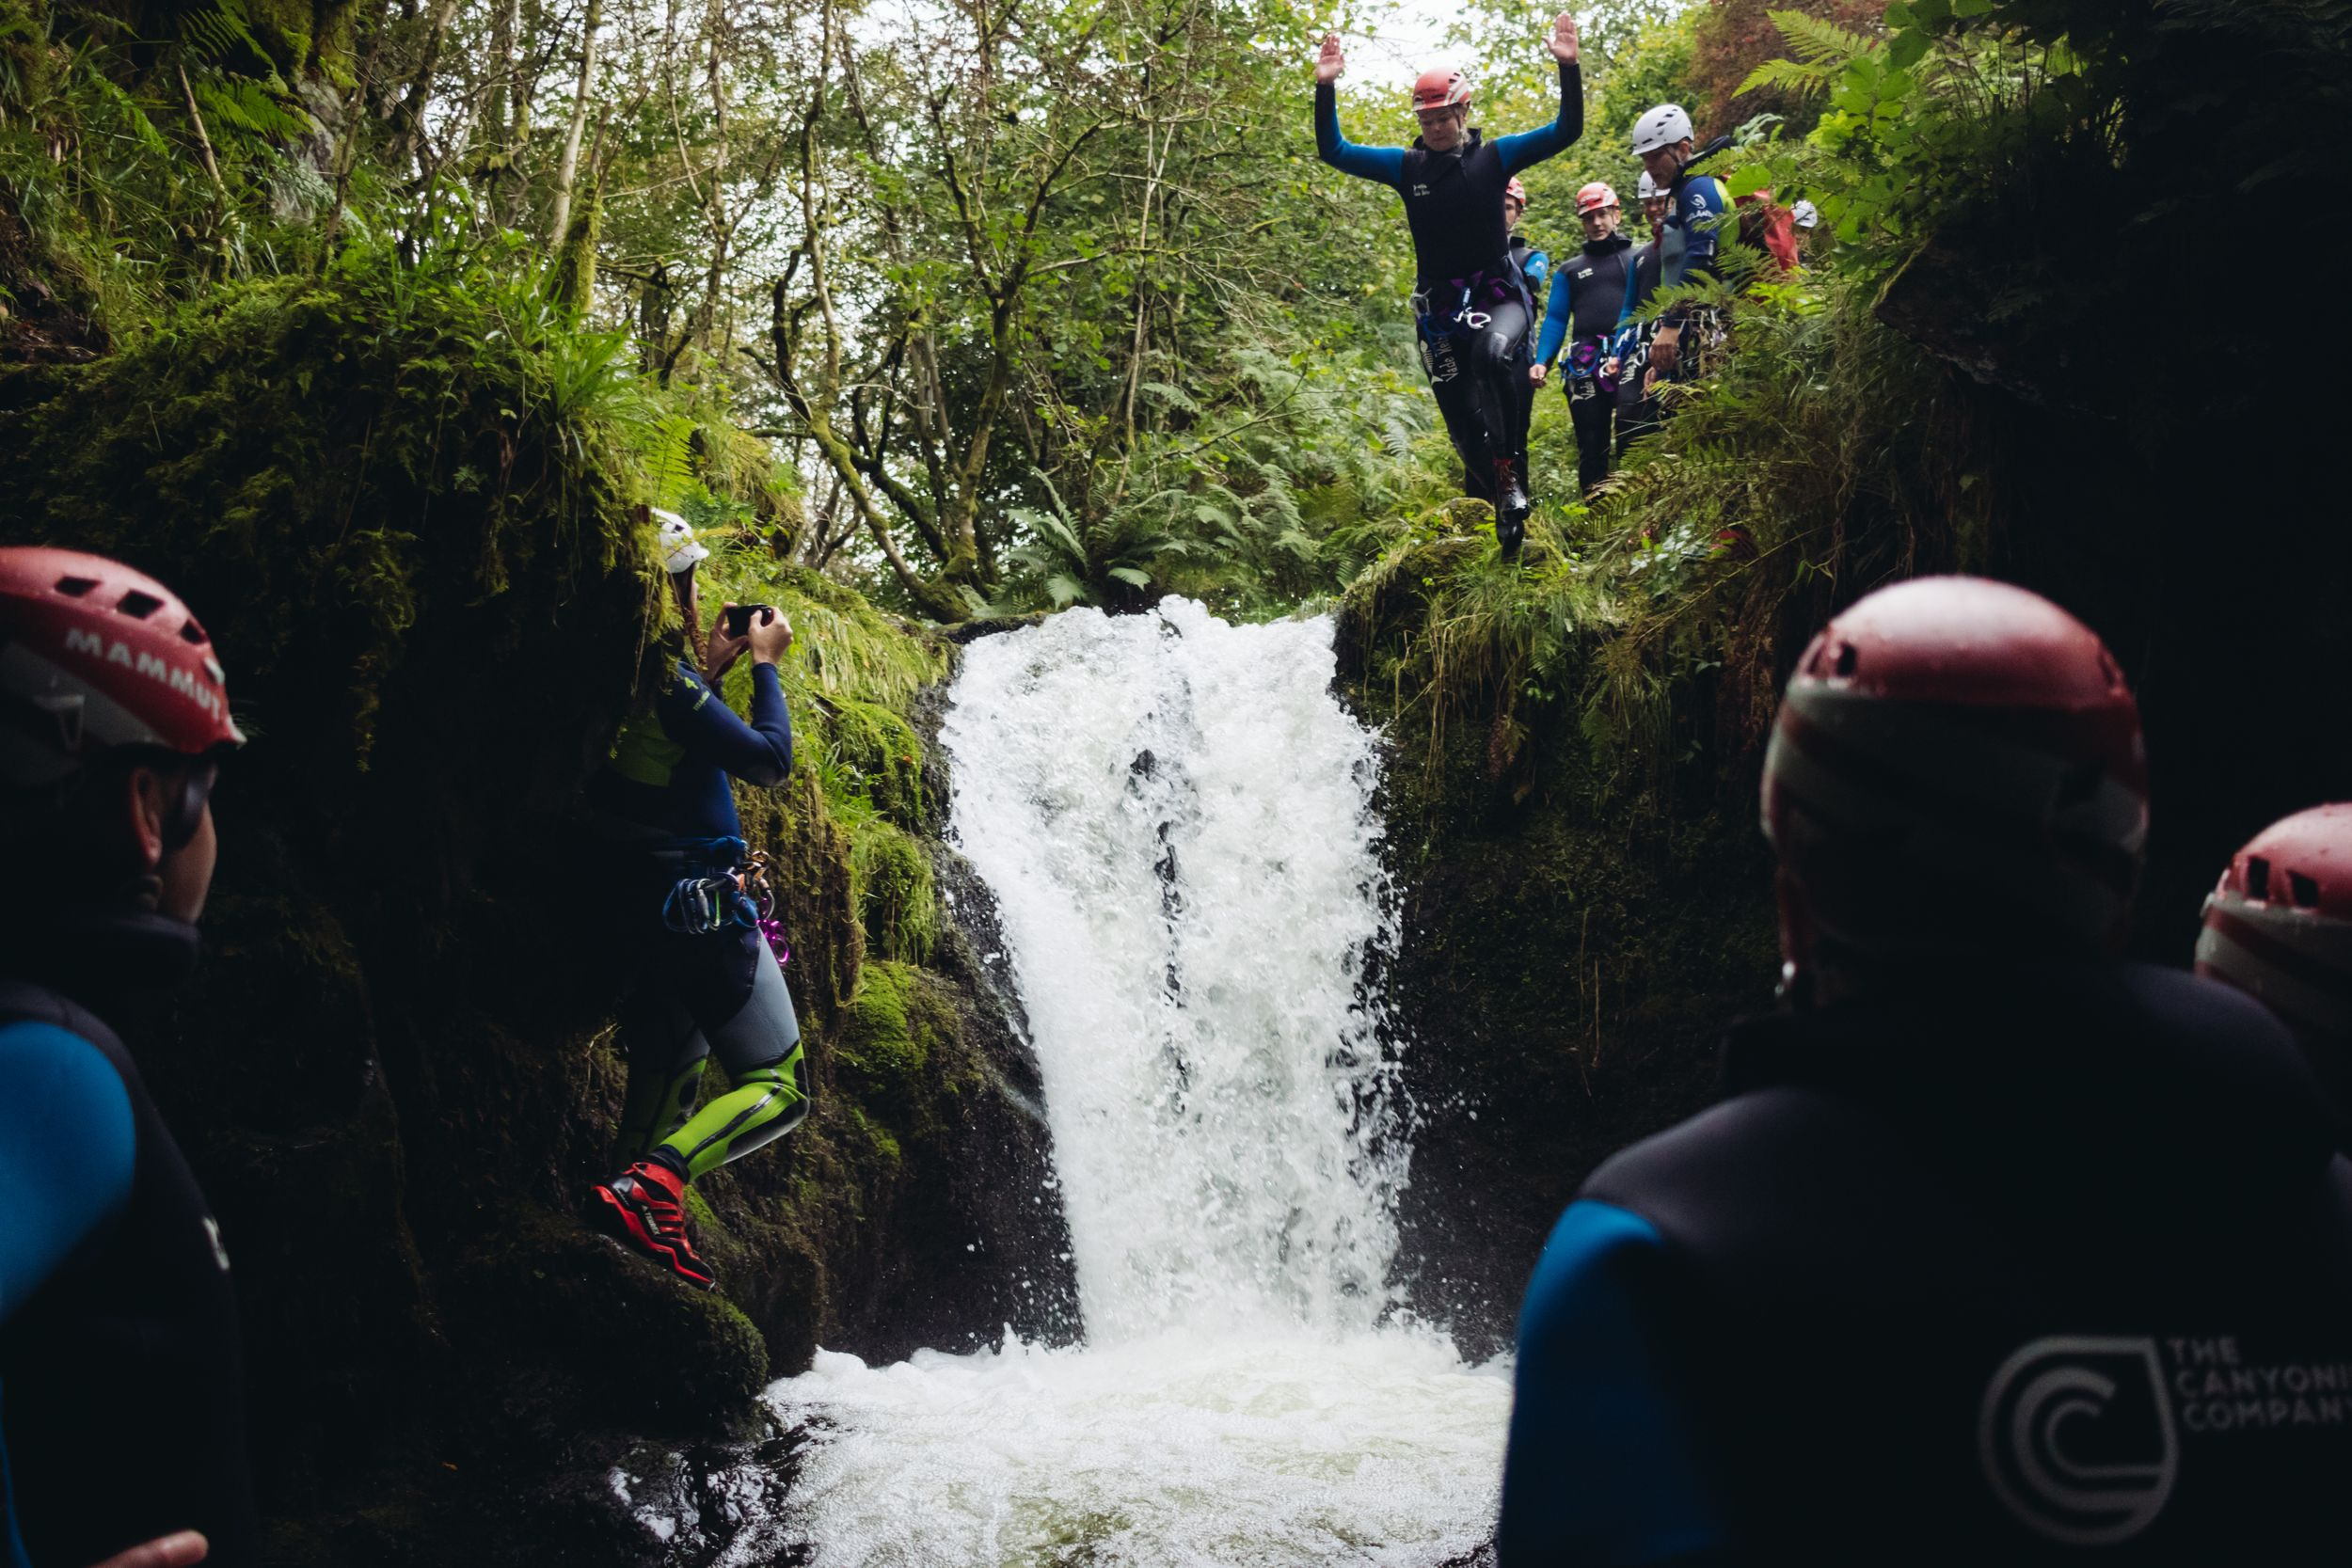 canyoning scotland dollar glen jump